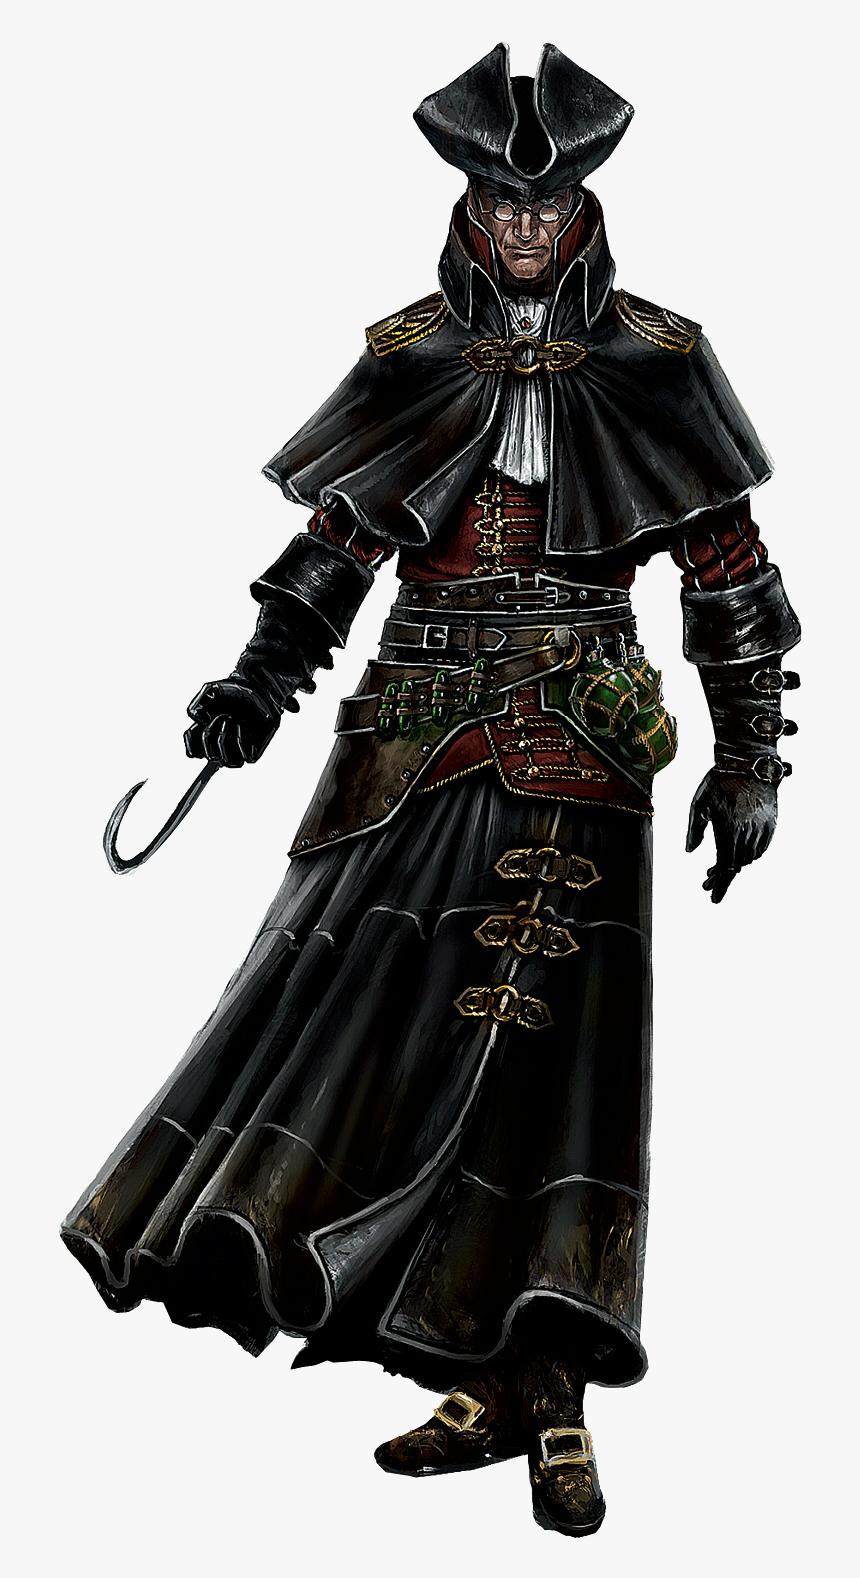 Assassin S Creed Black Flag Character Concept Art Hd Png Download Kindpng